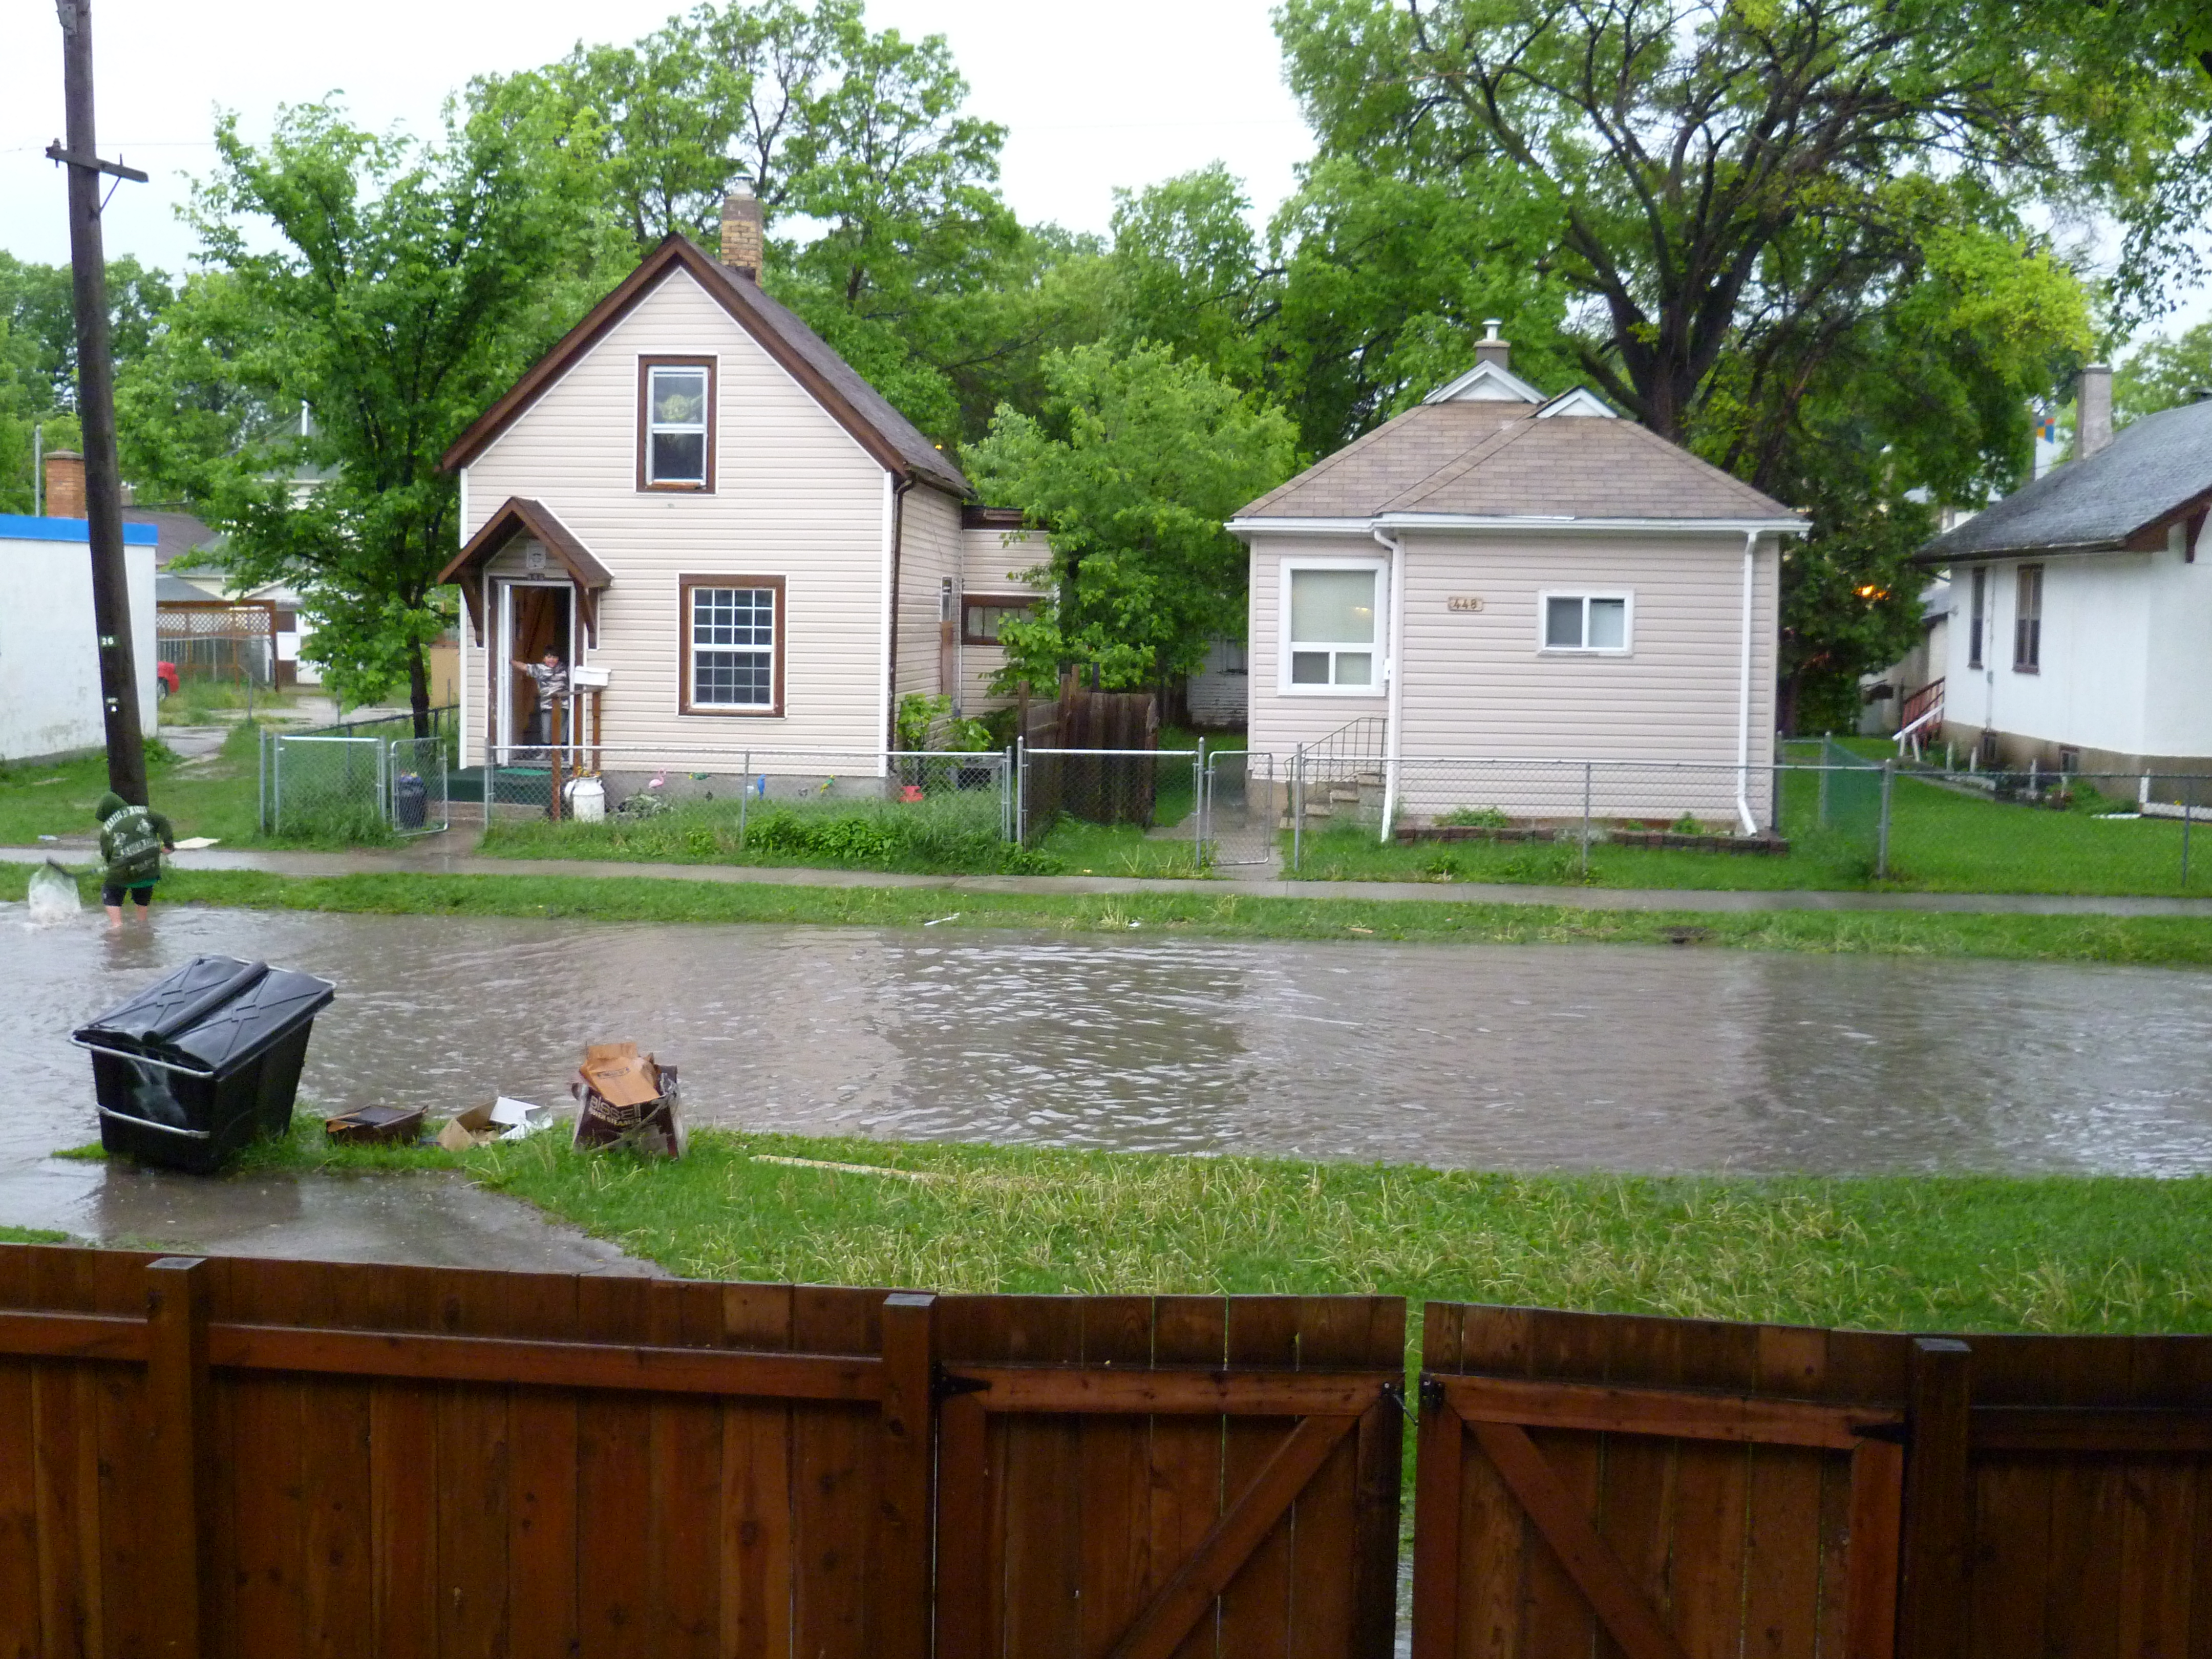 Our street after a torrential rainfall.